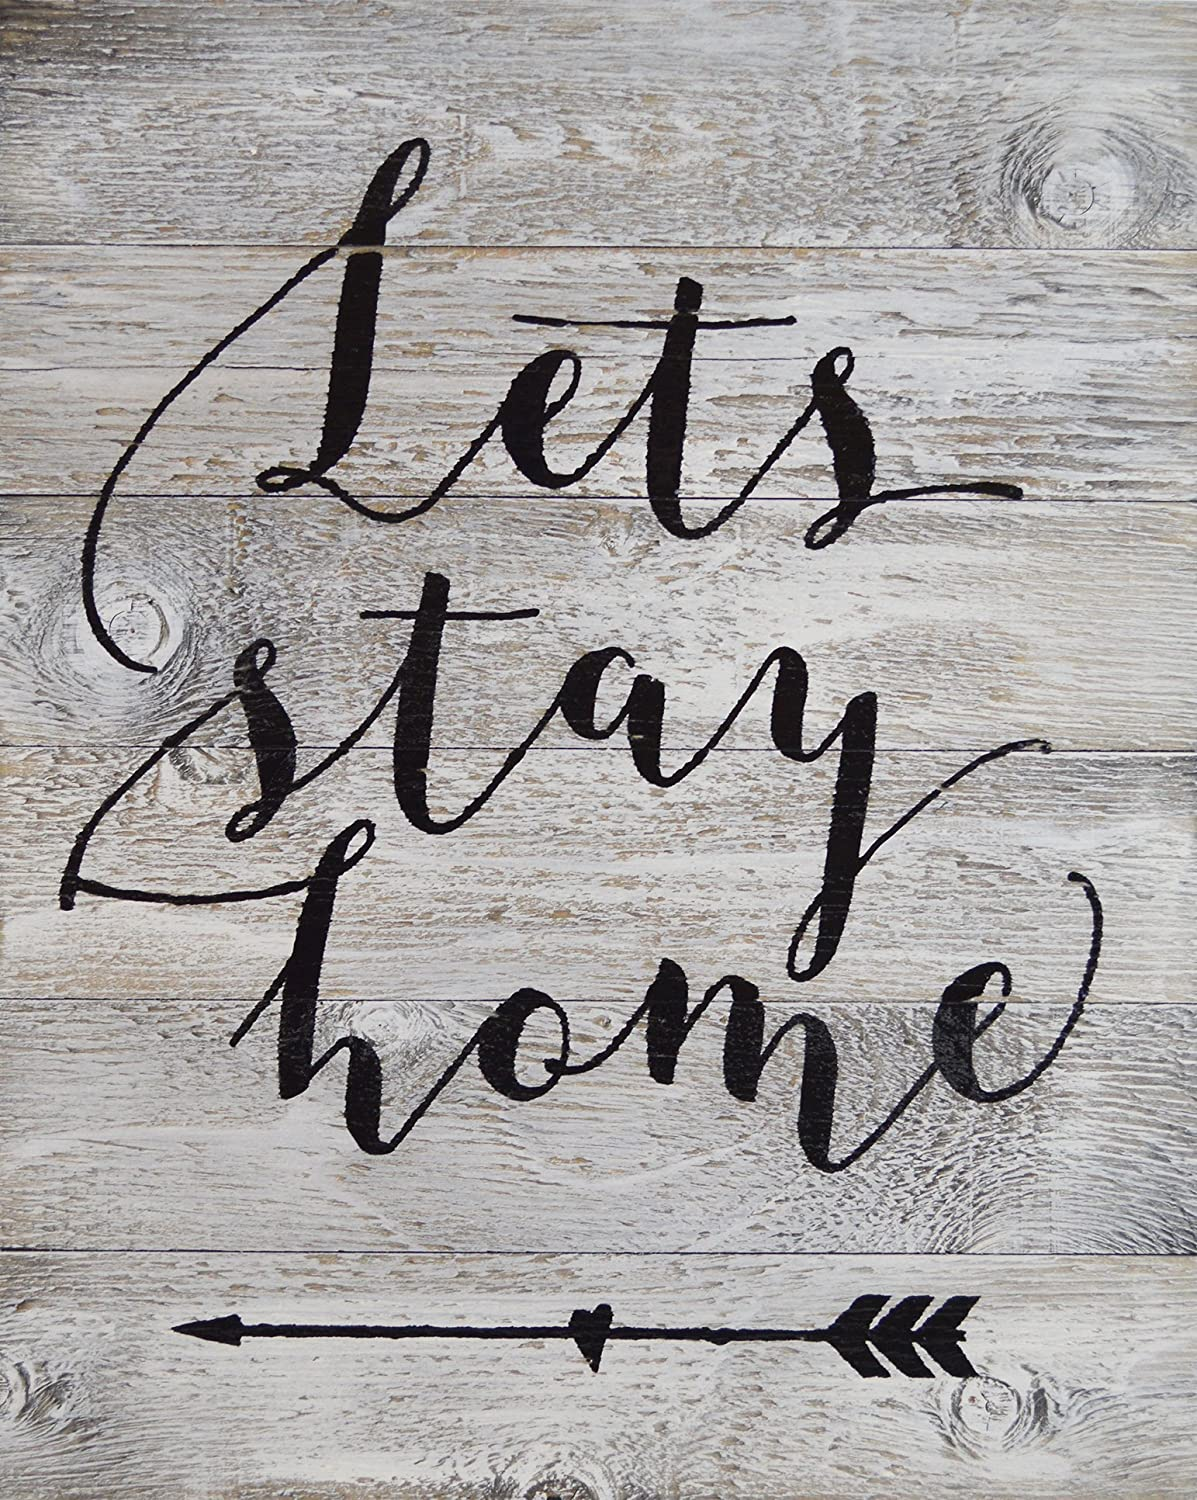 Amazon Com Rustic Barn Wood Pallet Sign Lets Stay Home Quote With Fun Arrow Heart Graphic Pointing Back Size 14x 18 Rustic Distressed Signs Handmade With Real Wood That Will Look